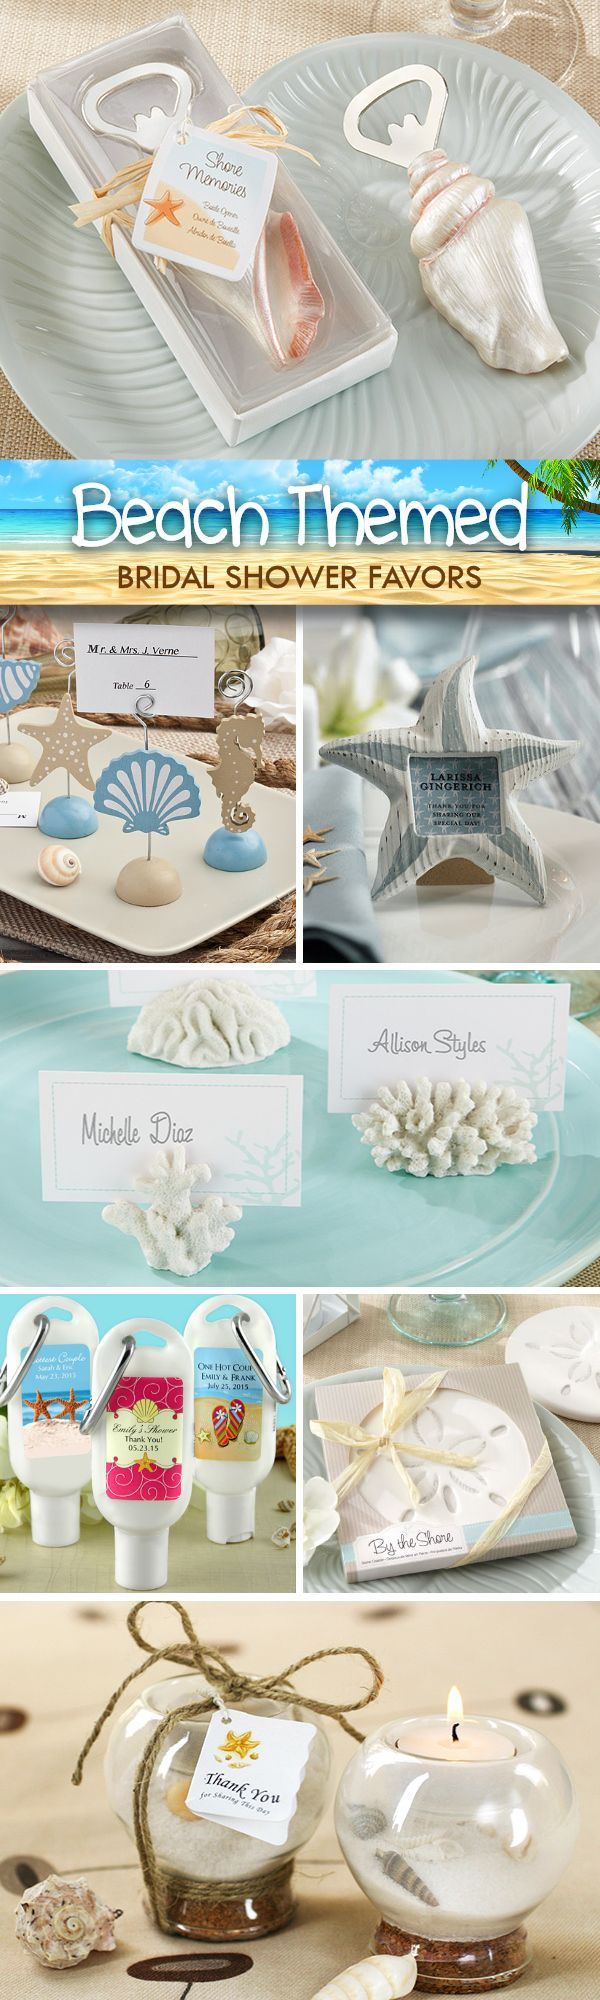 Looking For Little Thank You Gifts Your Guests Will Love Check Out These Beach Themed Bridal Shower Favors That Are Sure To Impress